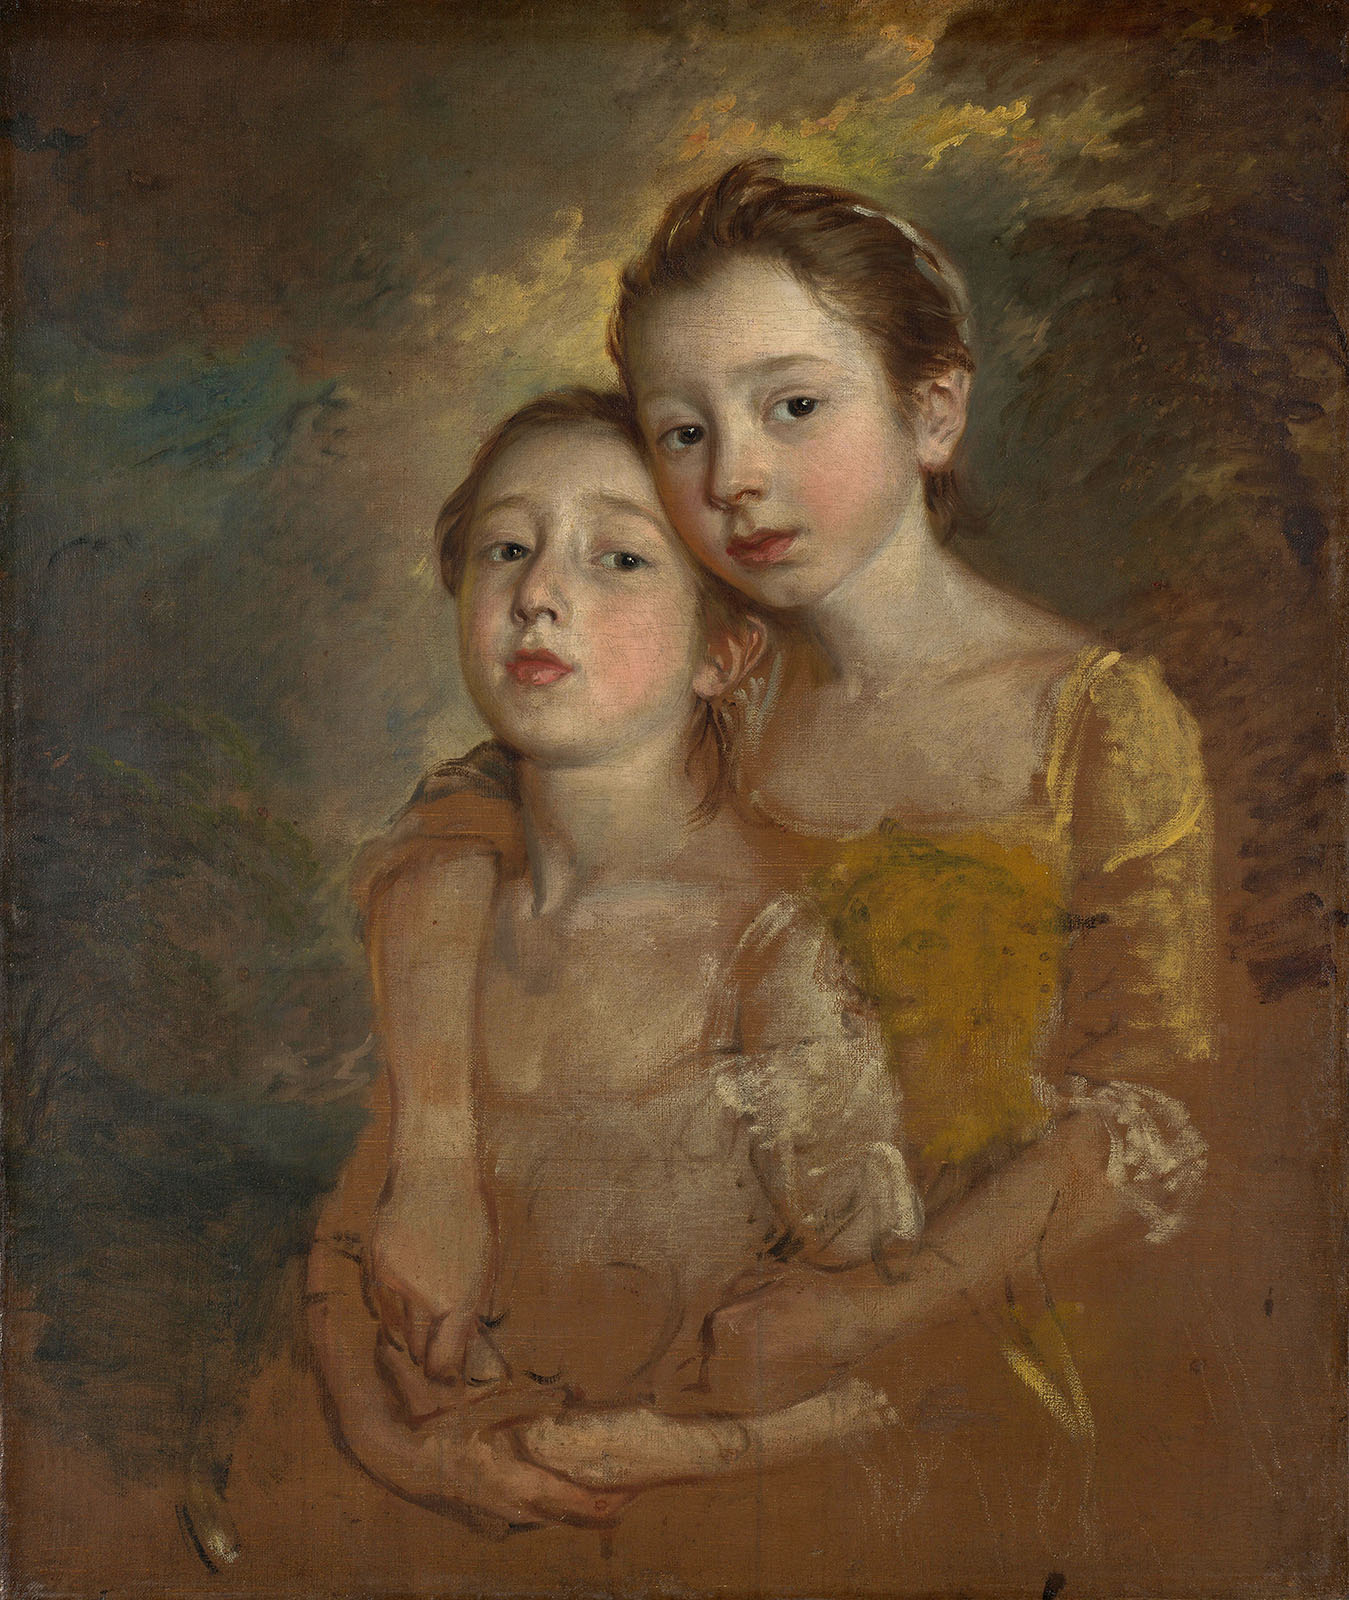 Thomas Gainsborough. Las hijas del pintor con un gato. 1760-1761. National Gallery. Londres.